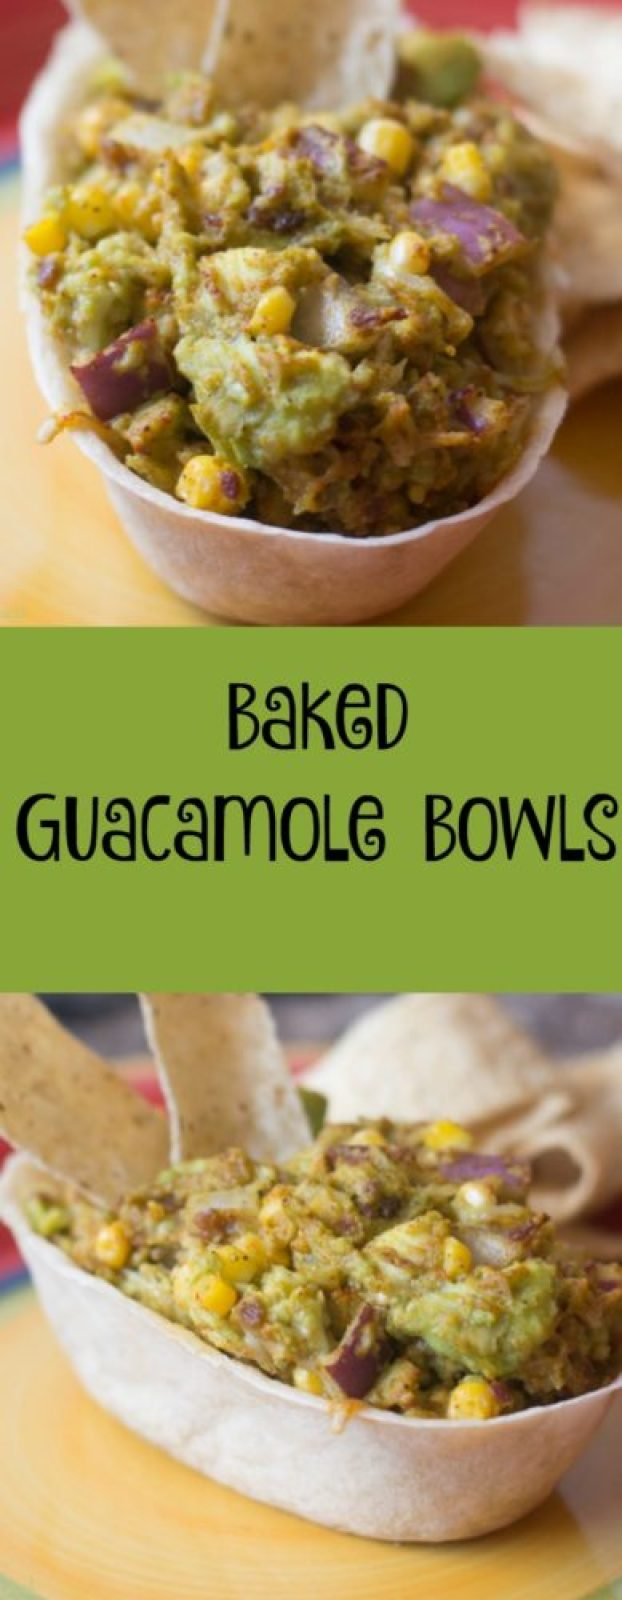 If you are a guacamole fan, you won't want to miss these loaded baked guacamole bowls. They are the perfect portable appetizer and are a fun twist on a traditional fare!